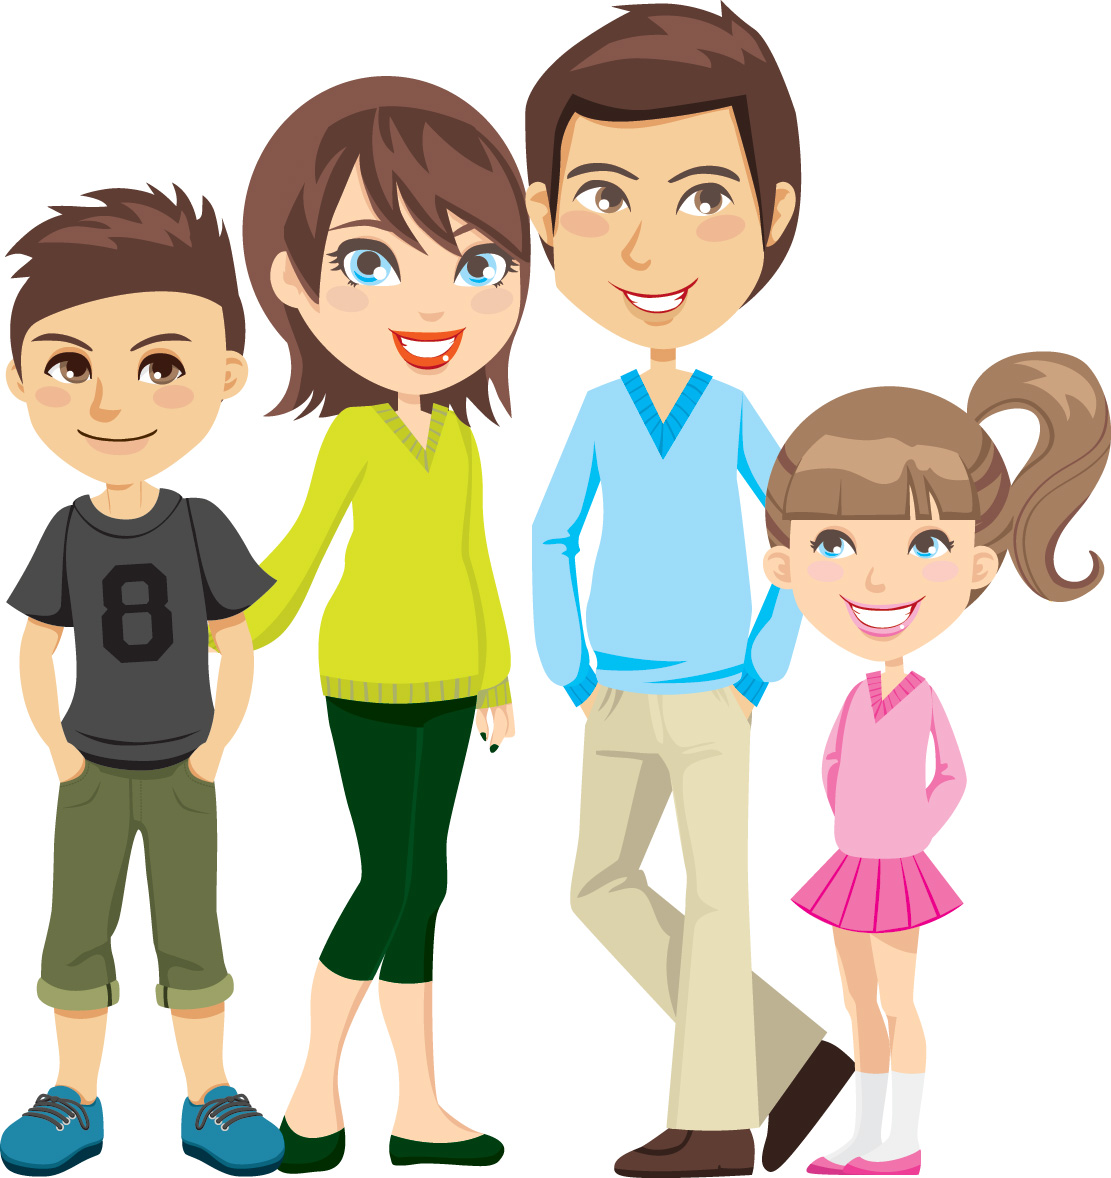 Free Cartoon Family Cliparts, Download Free Clip Art, Free.